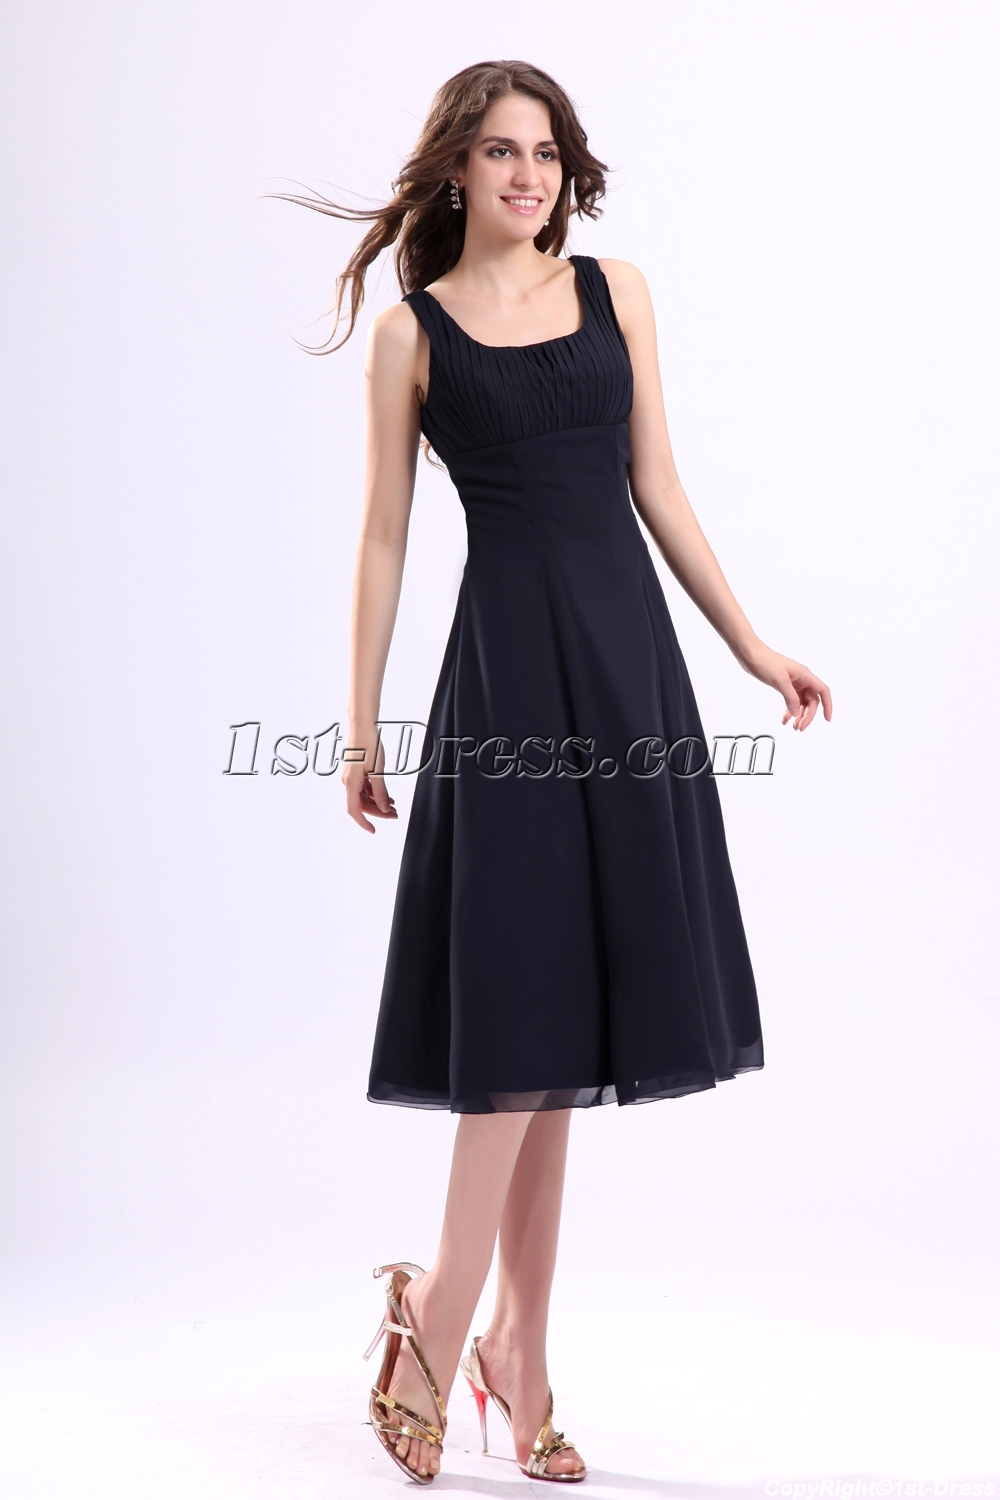 Black Tea Length Cocktail Dress - Ocodea.com